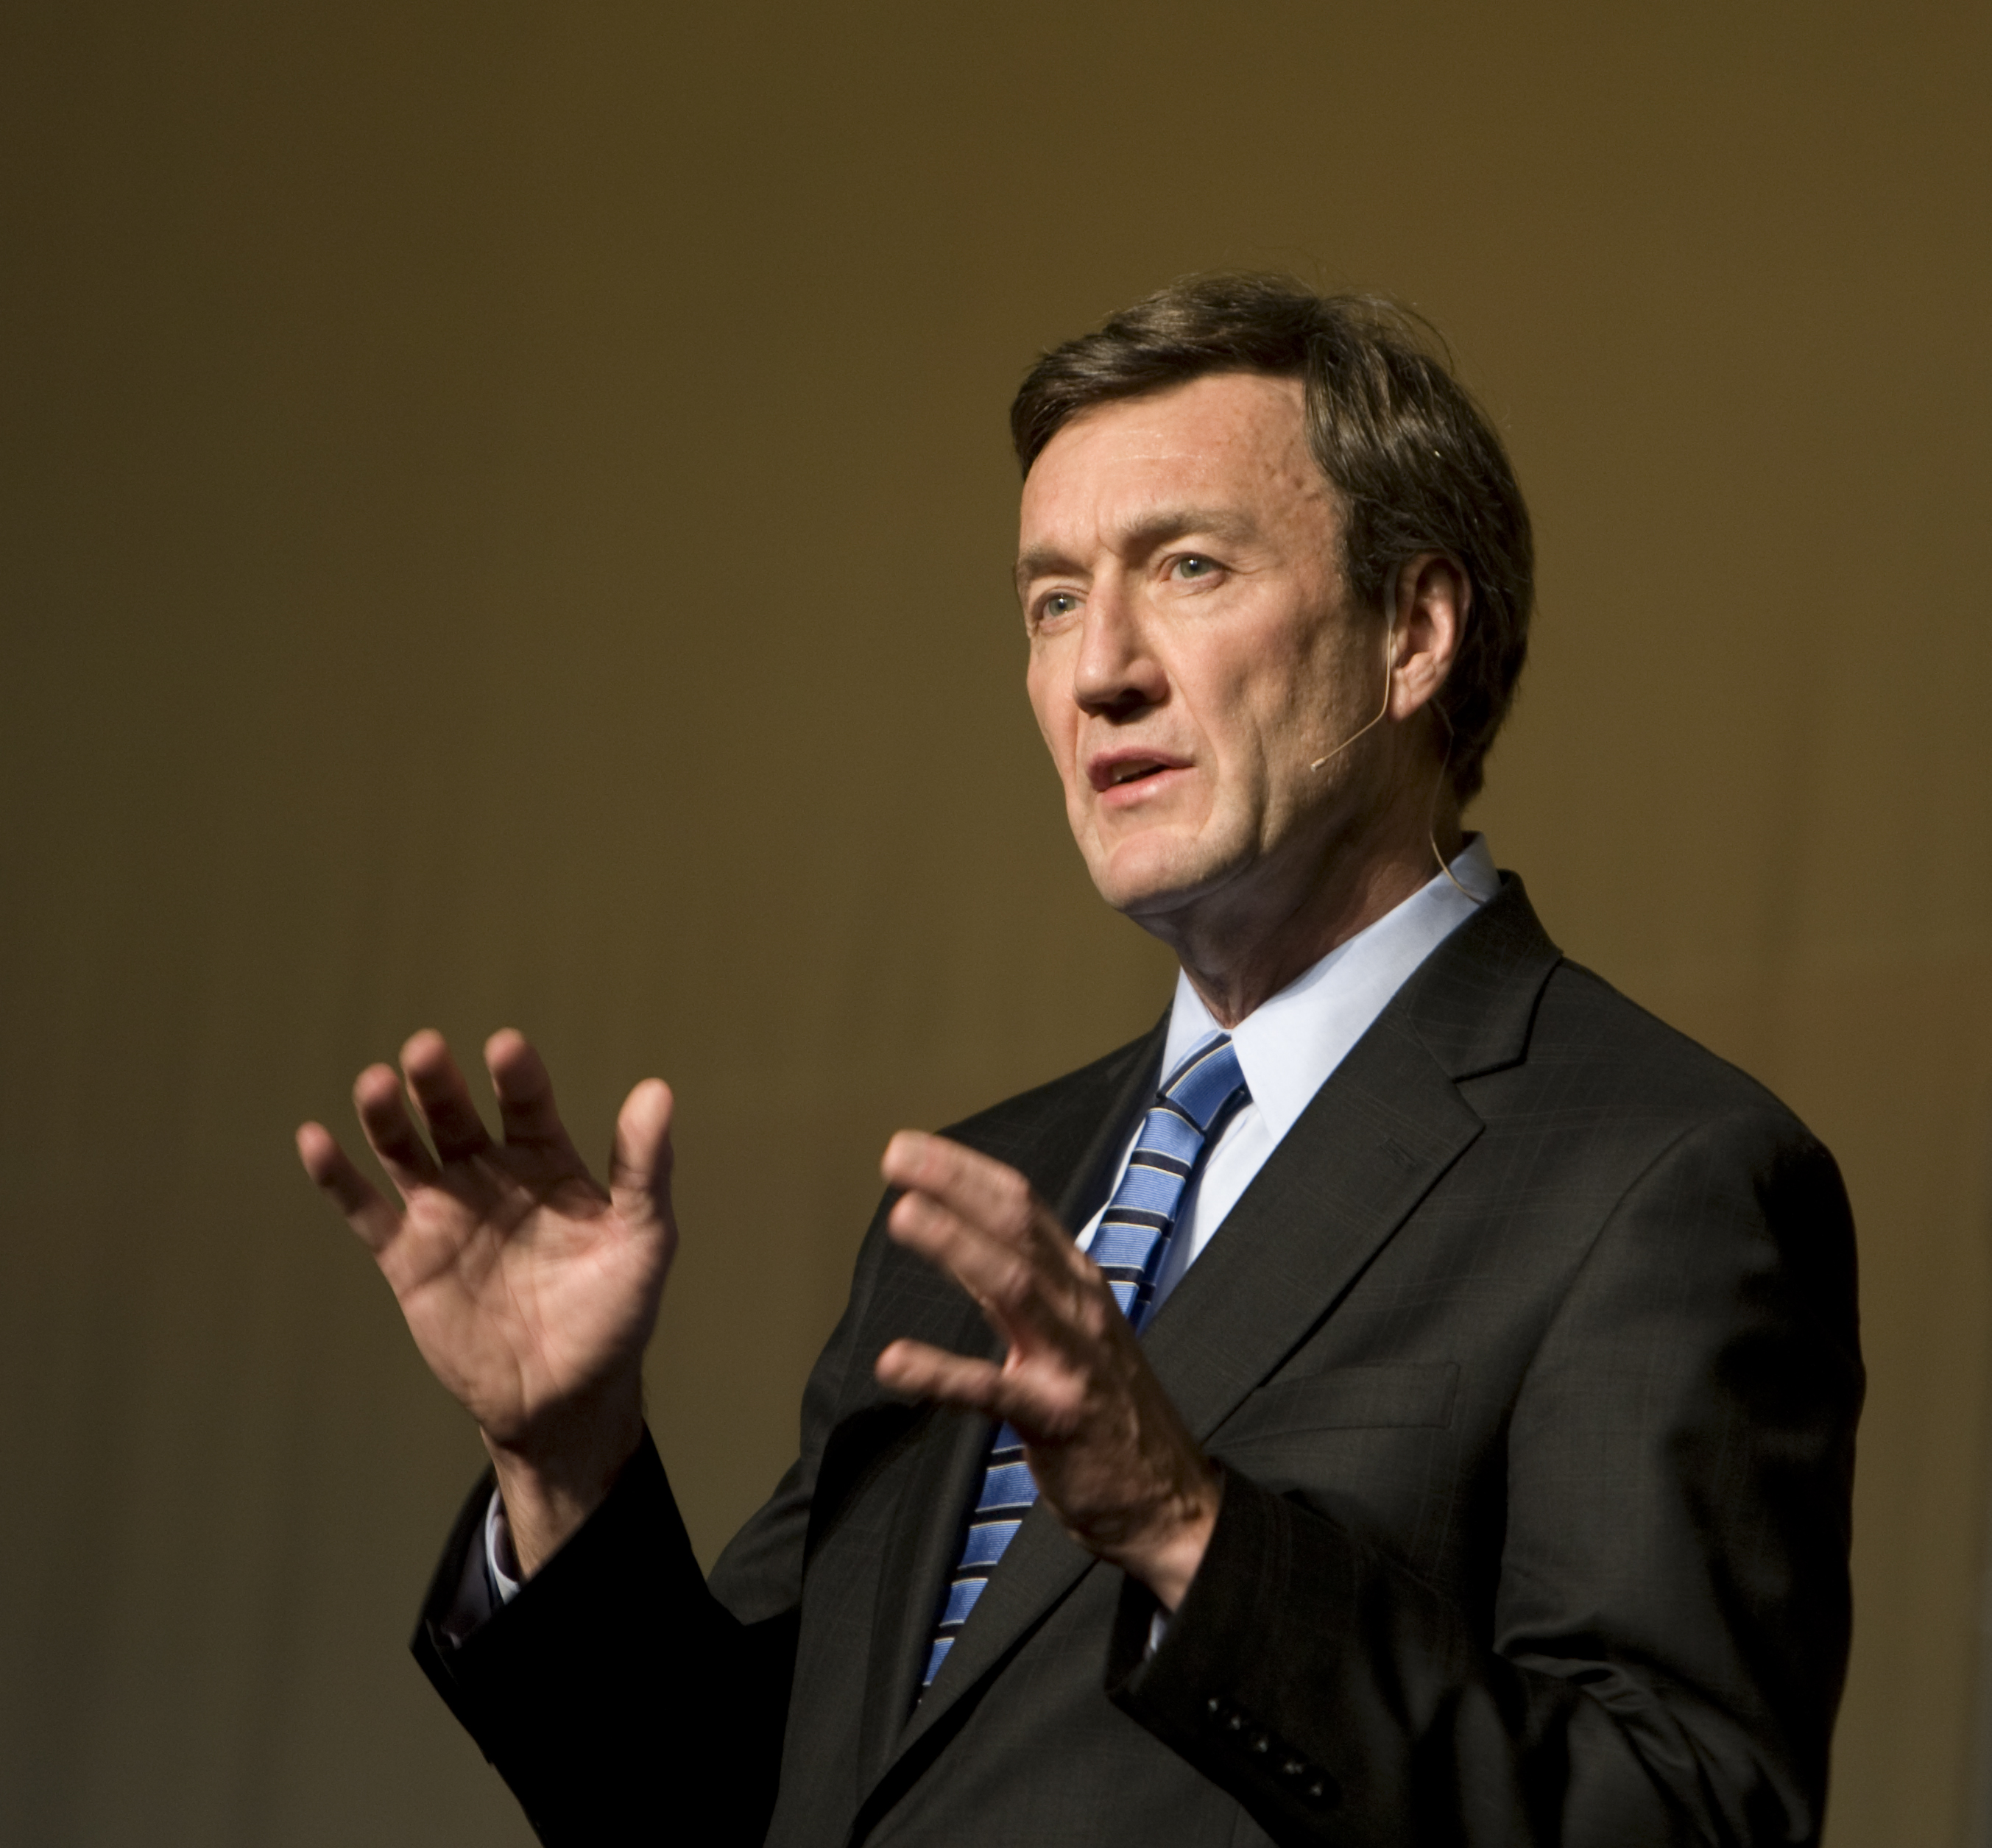 Mayo Clinic CEO John Noseworthy, M.D., to Address National Press Club